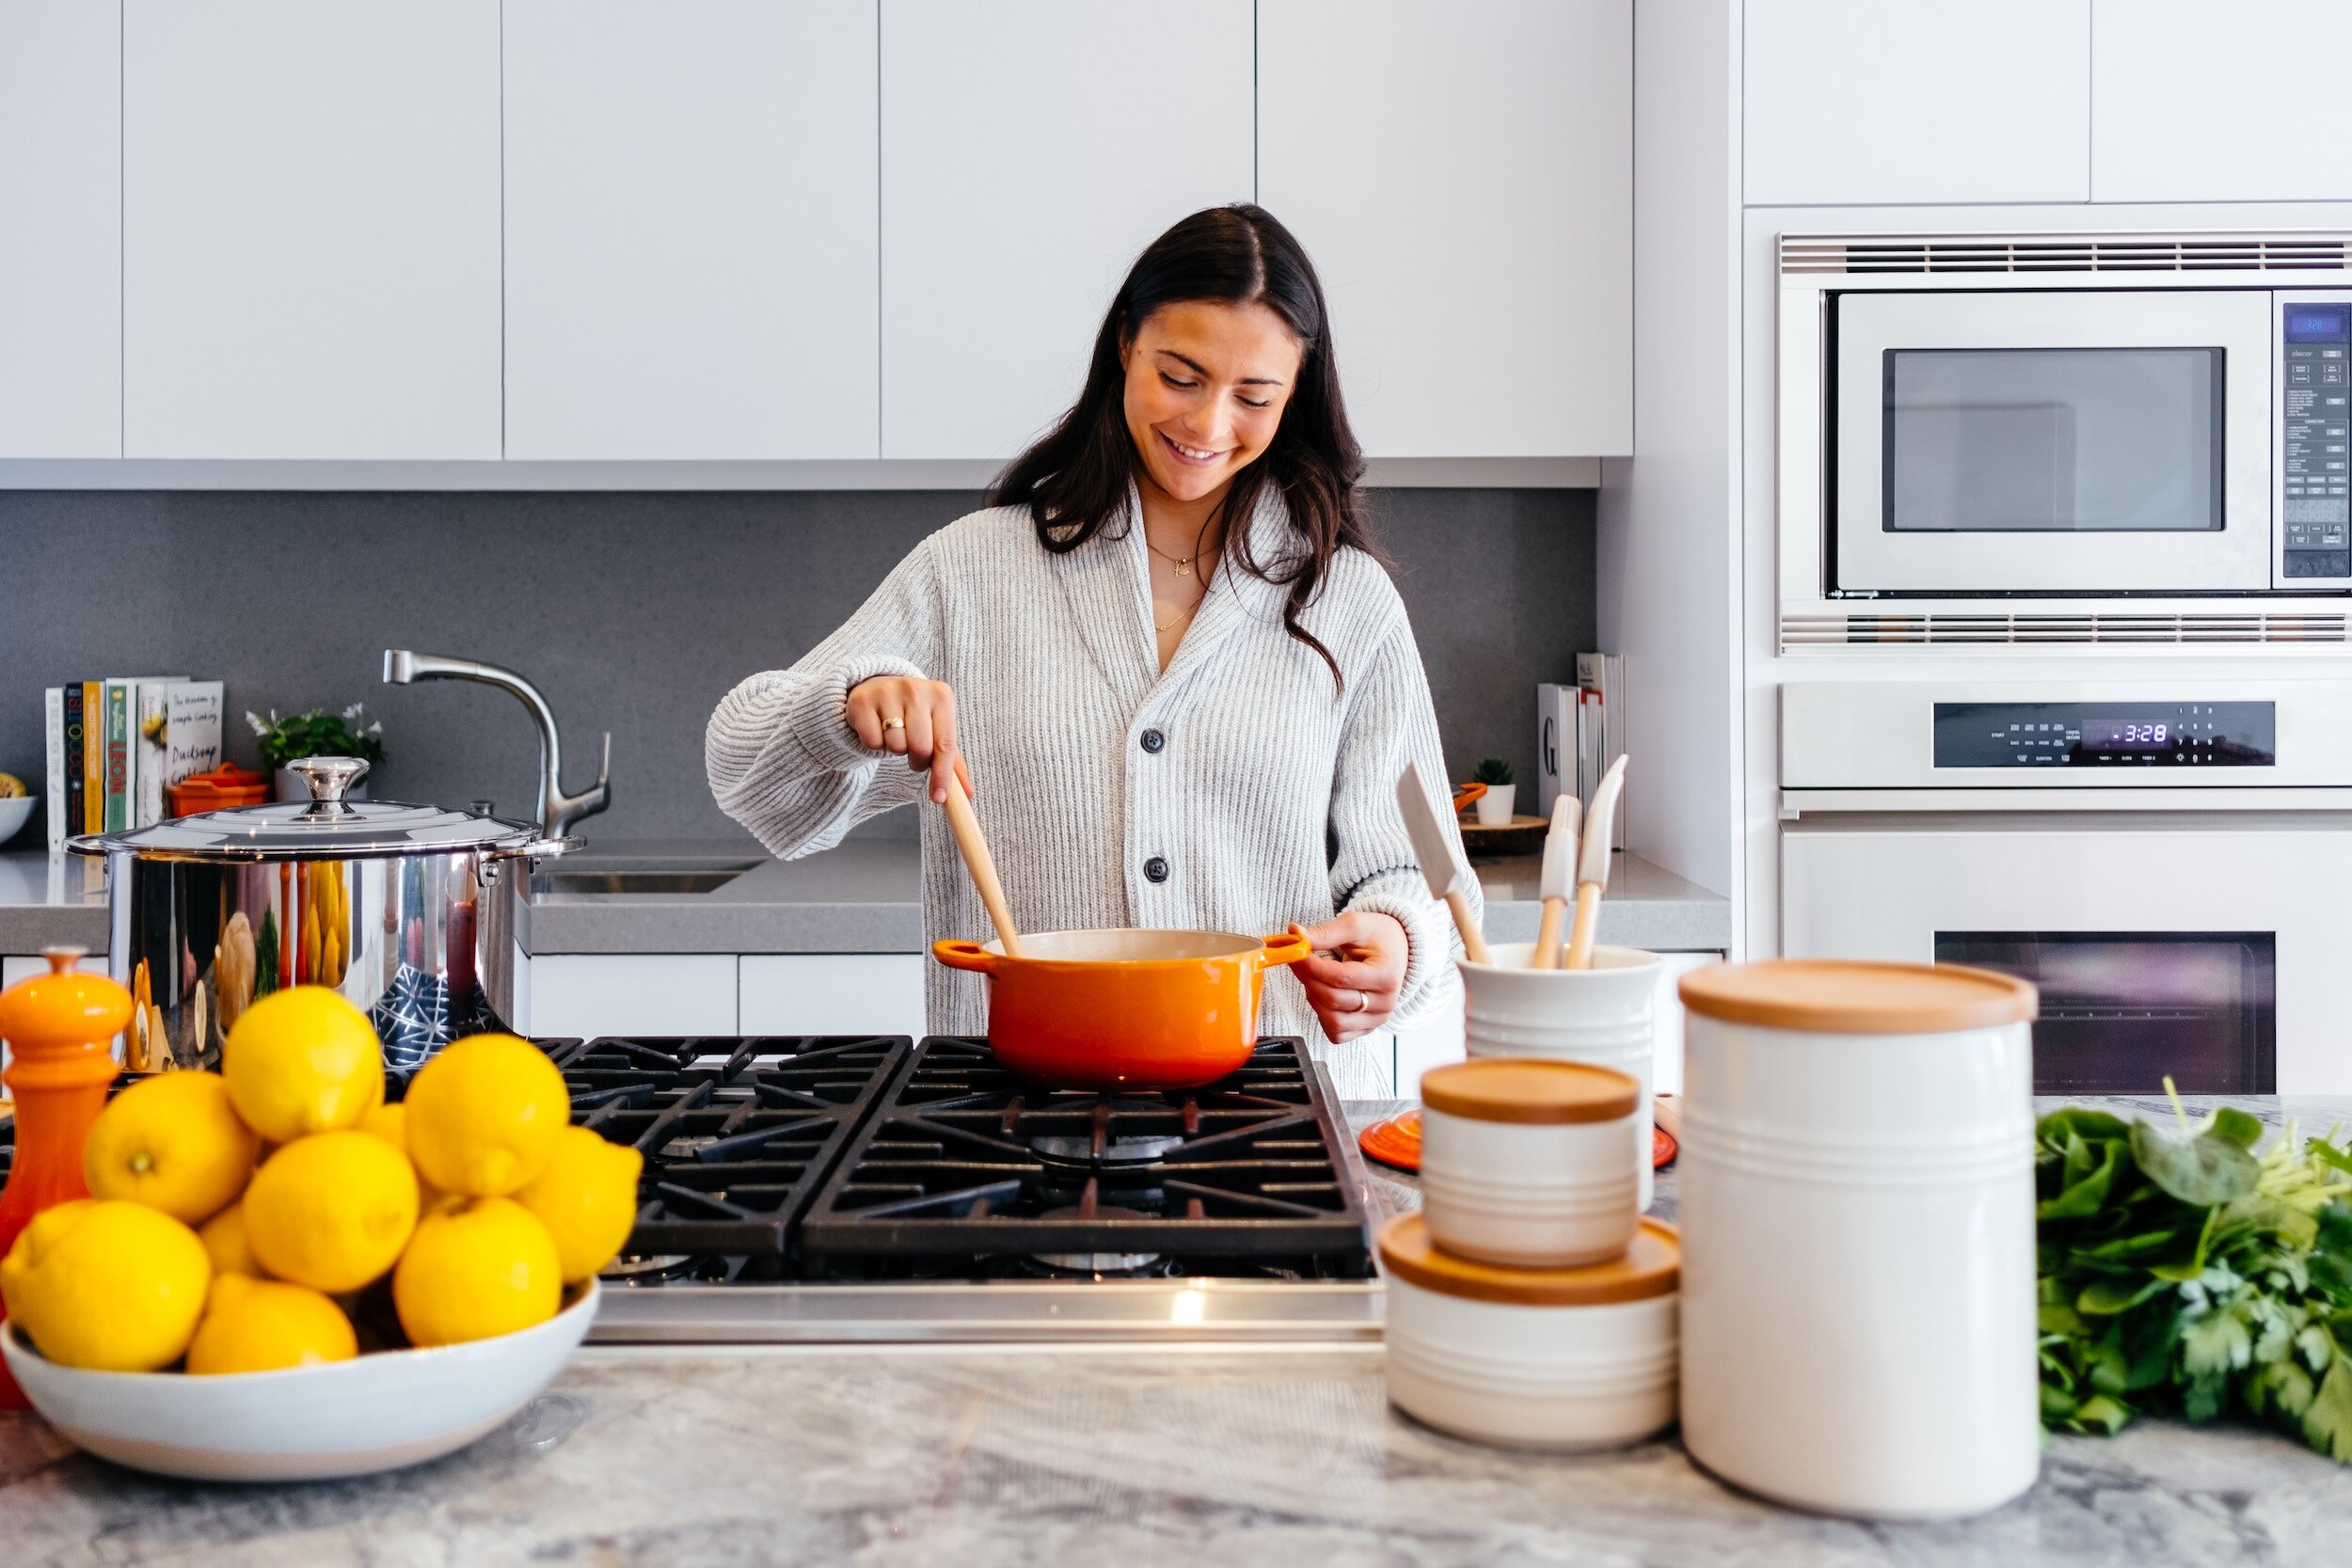 Does cooking at home help you lose weight